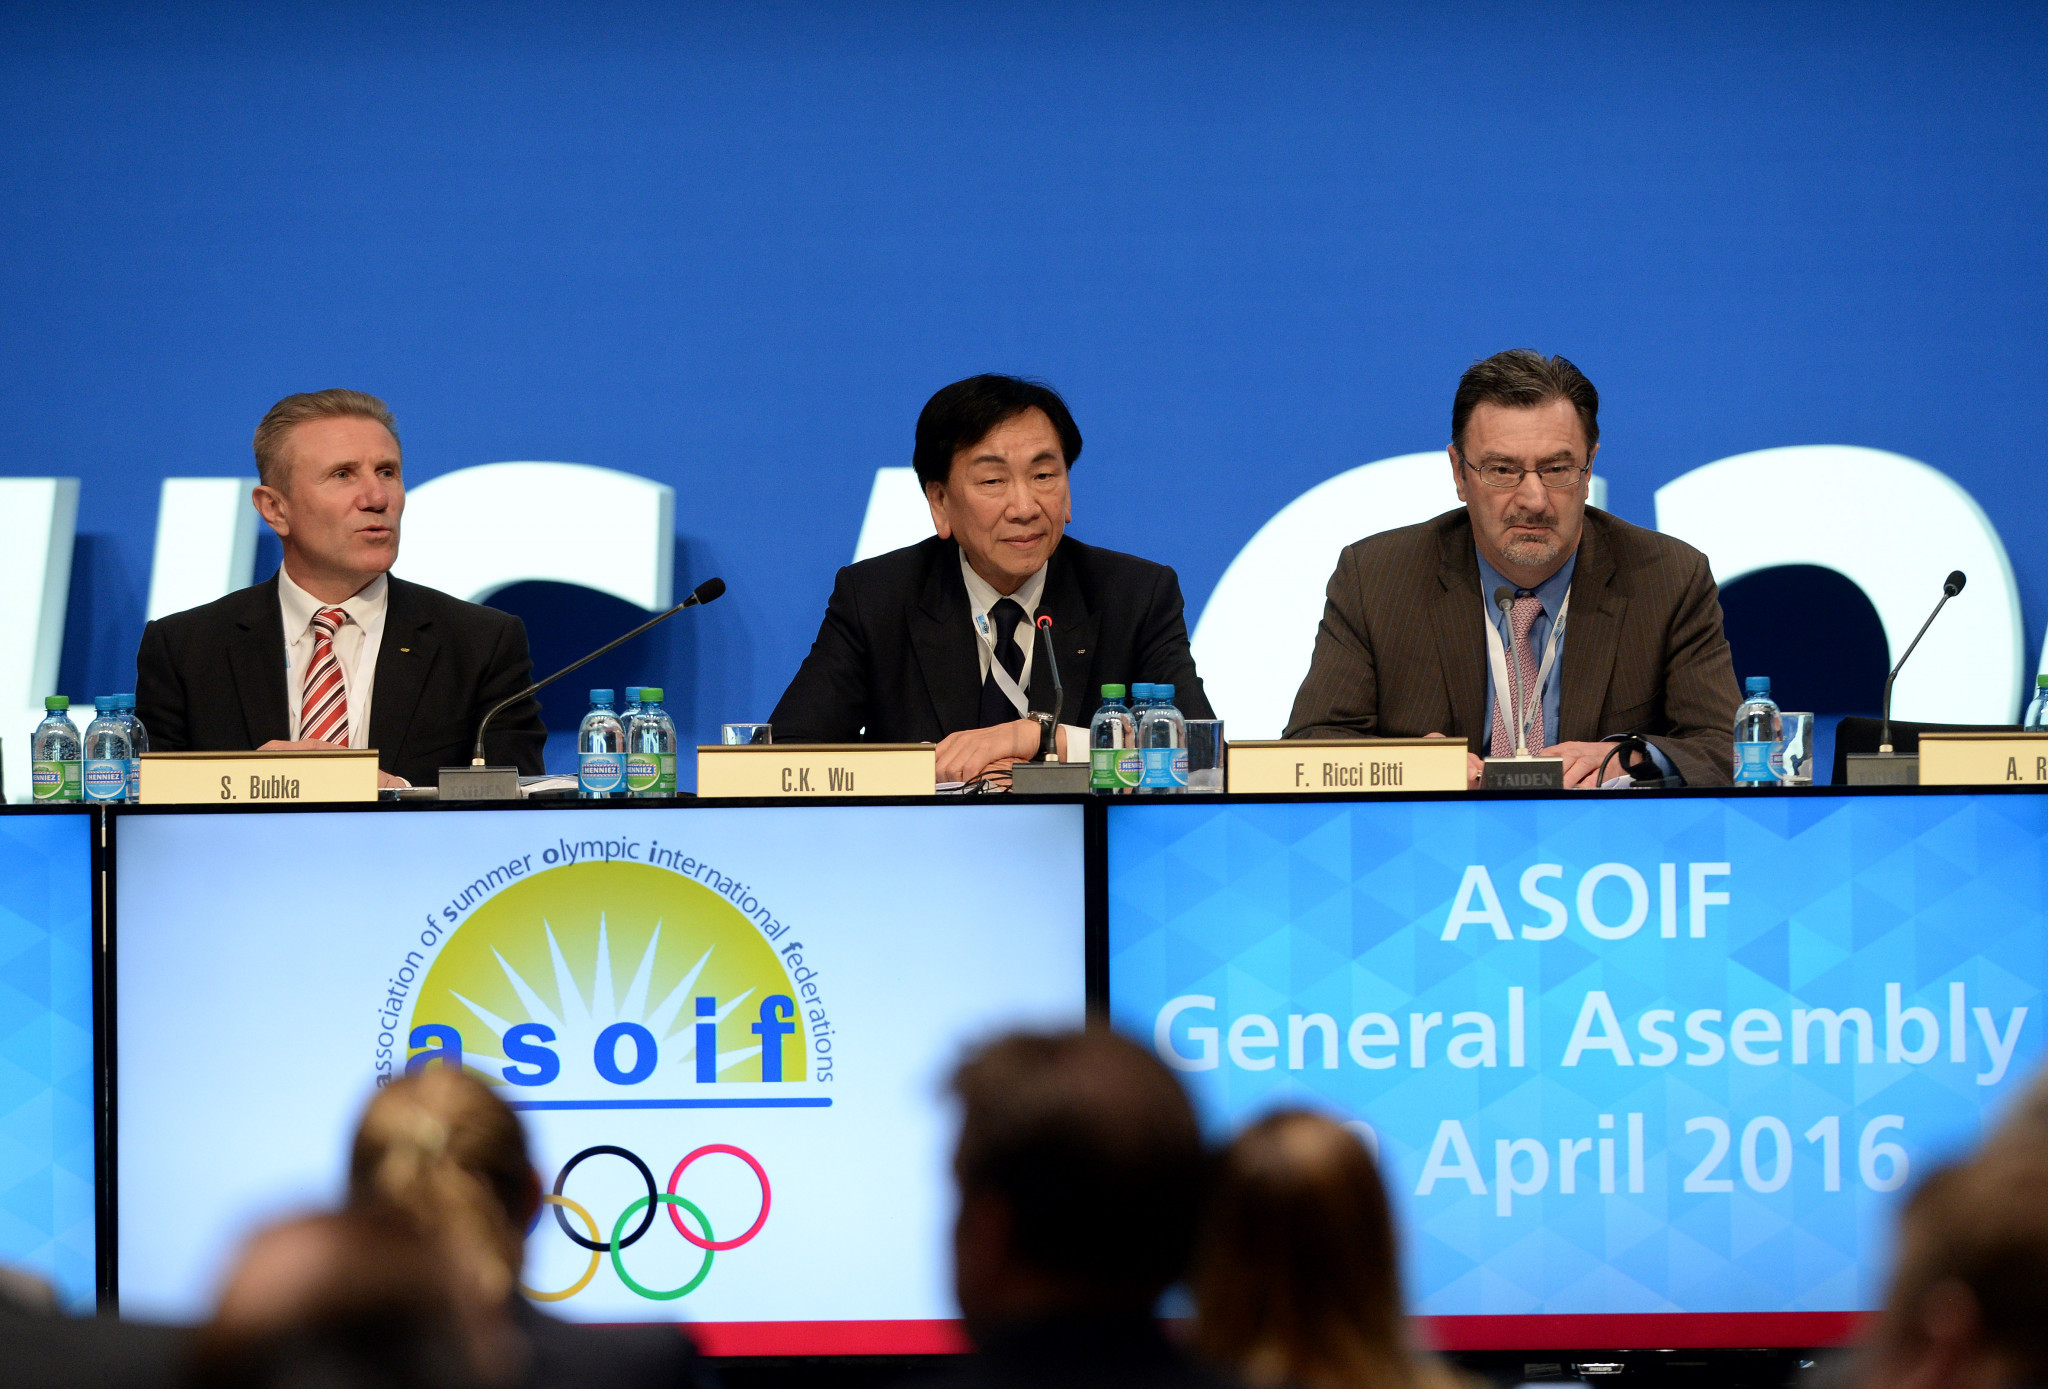 C K Wu has resigned from the ASOIF Council following his departure as AIBA President ©Getty Images